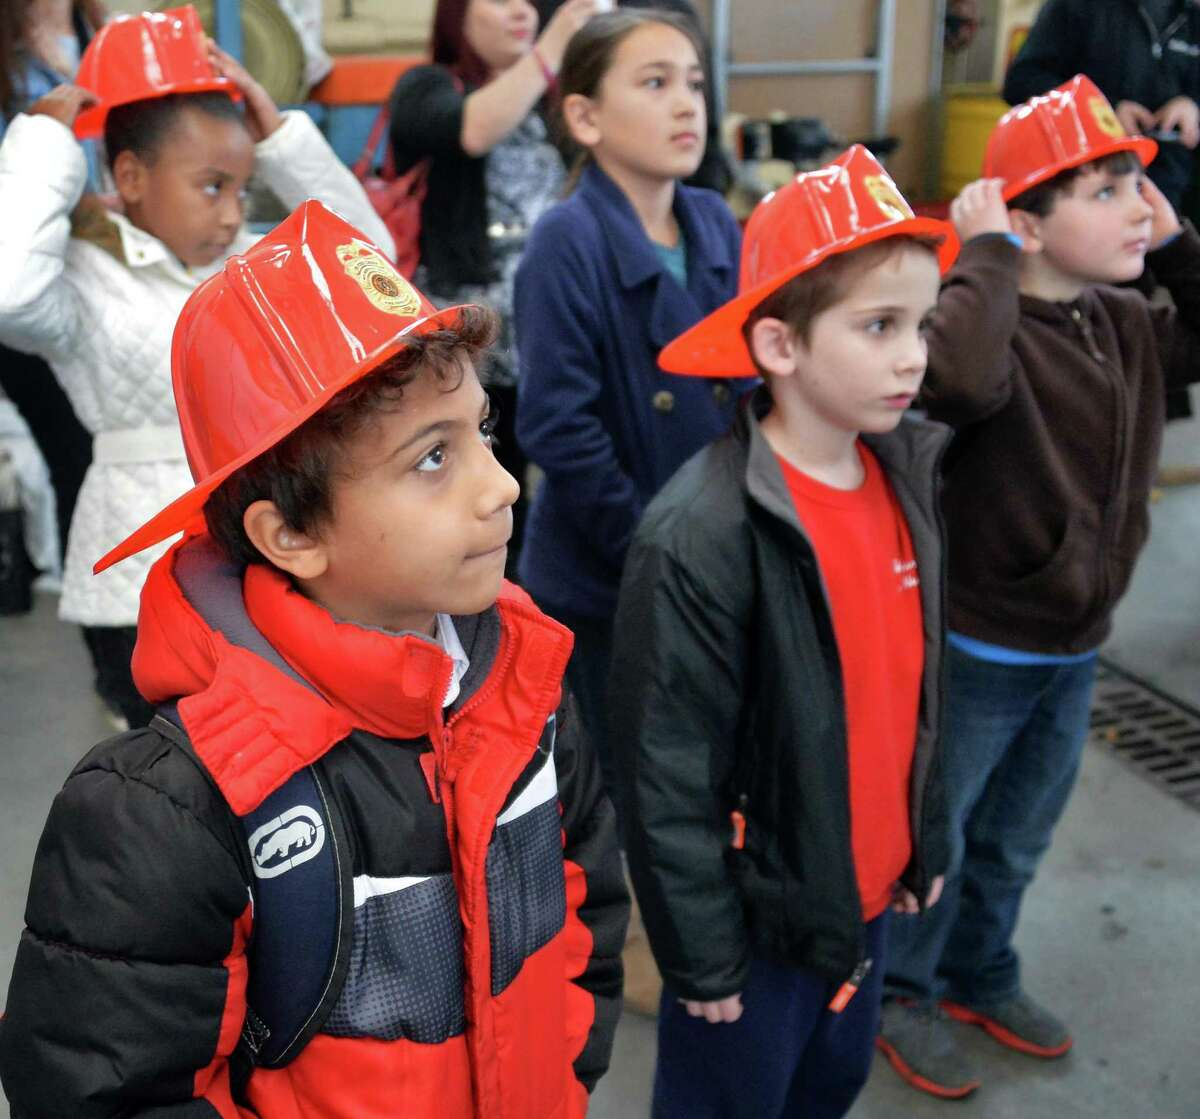 Ilan Payan, left, and other fire prevention poster contest winners from schools throughout the city tour the Troy Central Fire House Friday Nov. 13, 2015 in Troy, NY. (John Carl D'Annibale / Times Union)